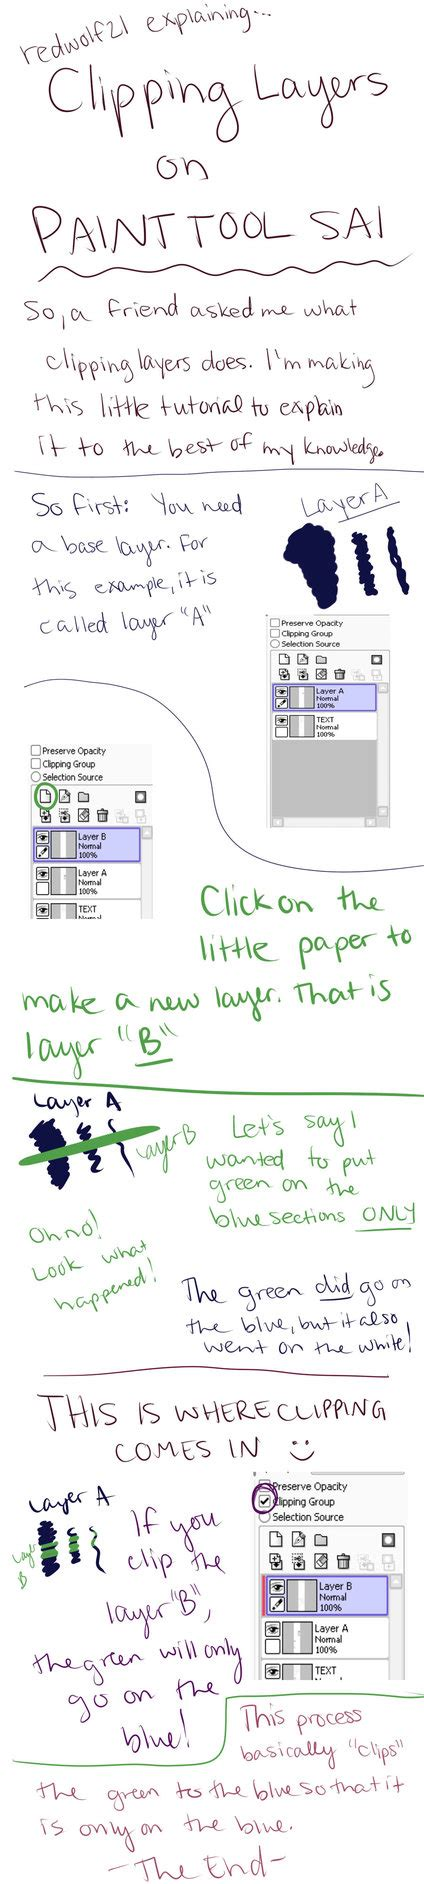 paint tool sai how to move layers rw21 explains clipping layers in paint tool sai by